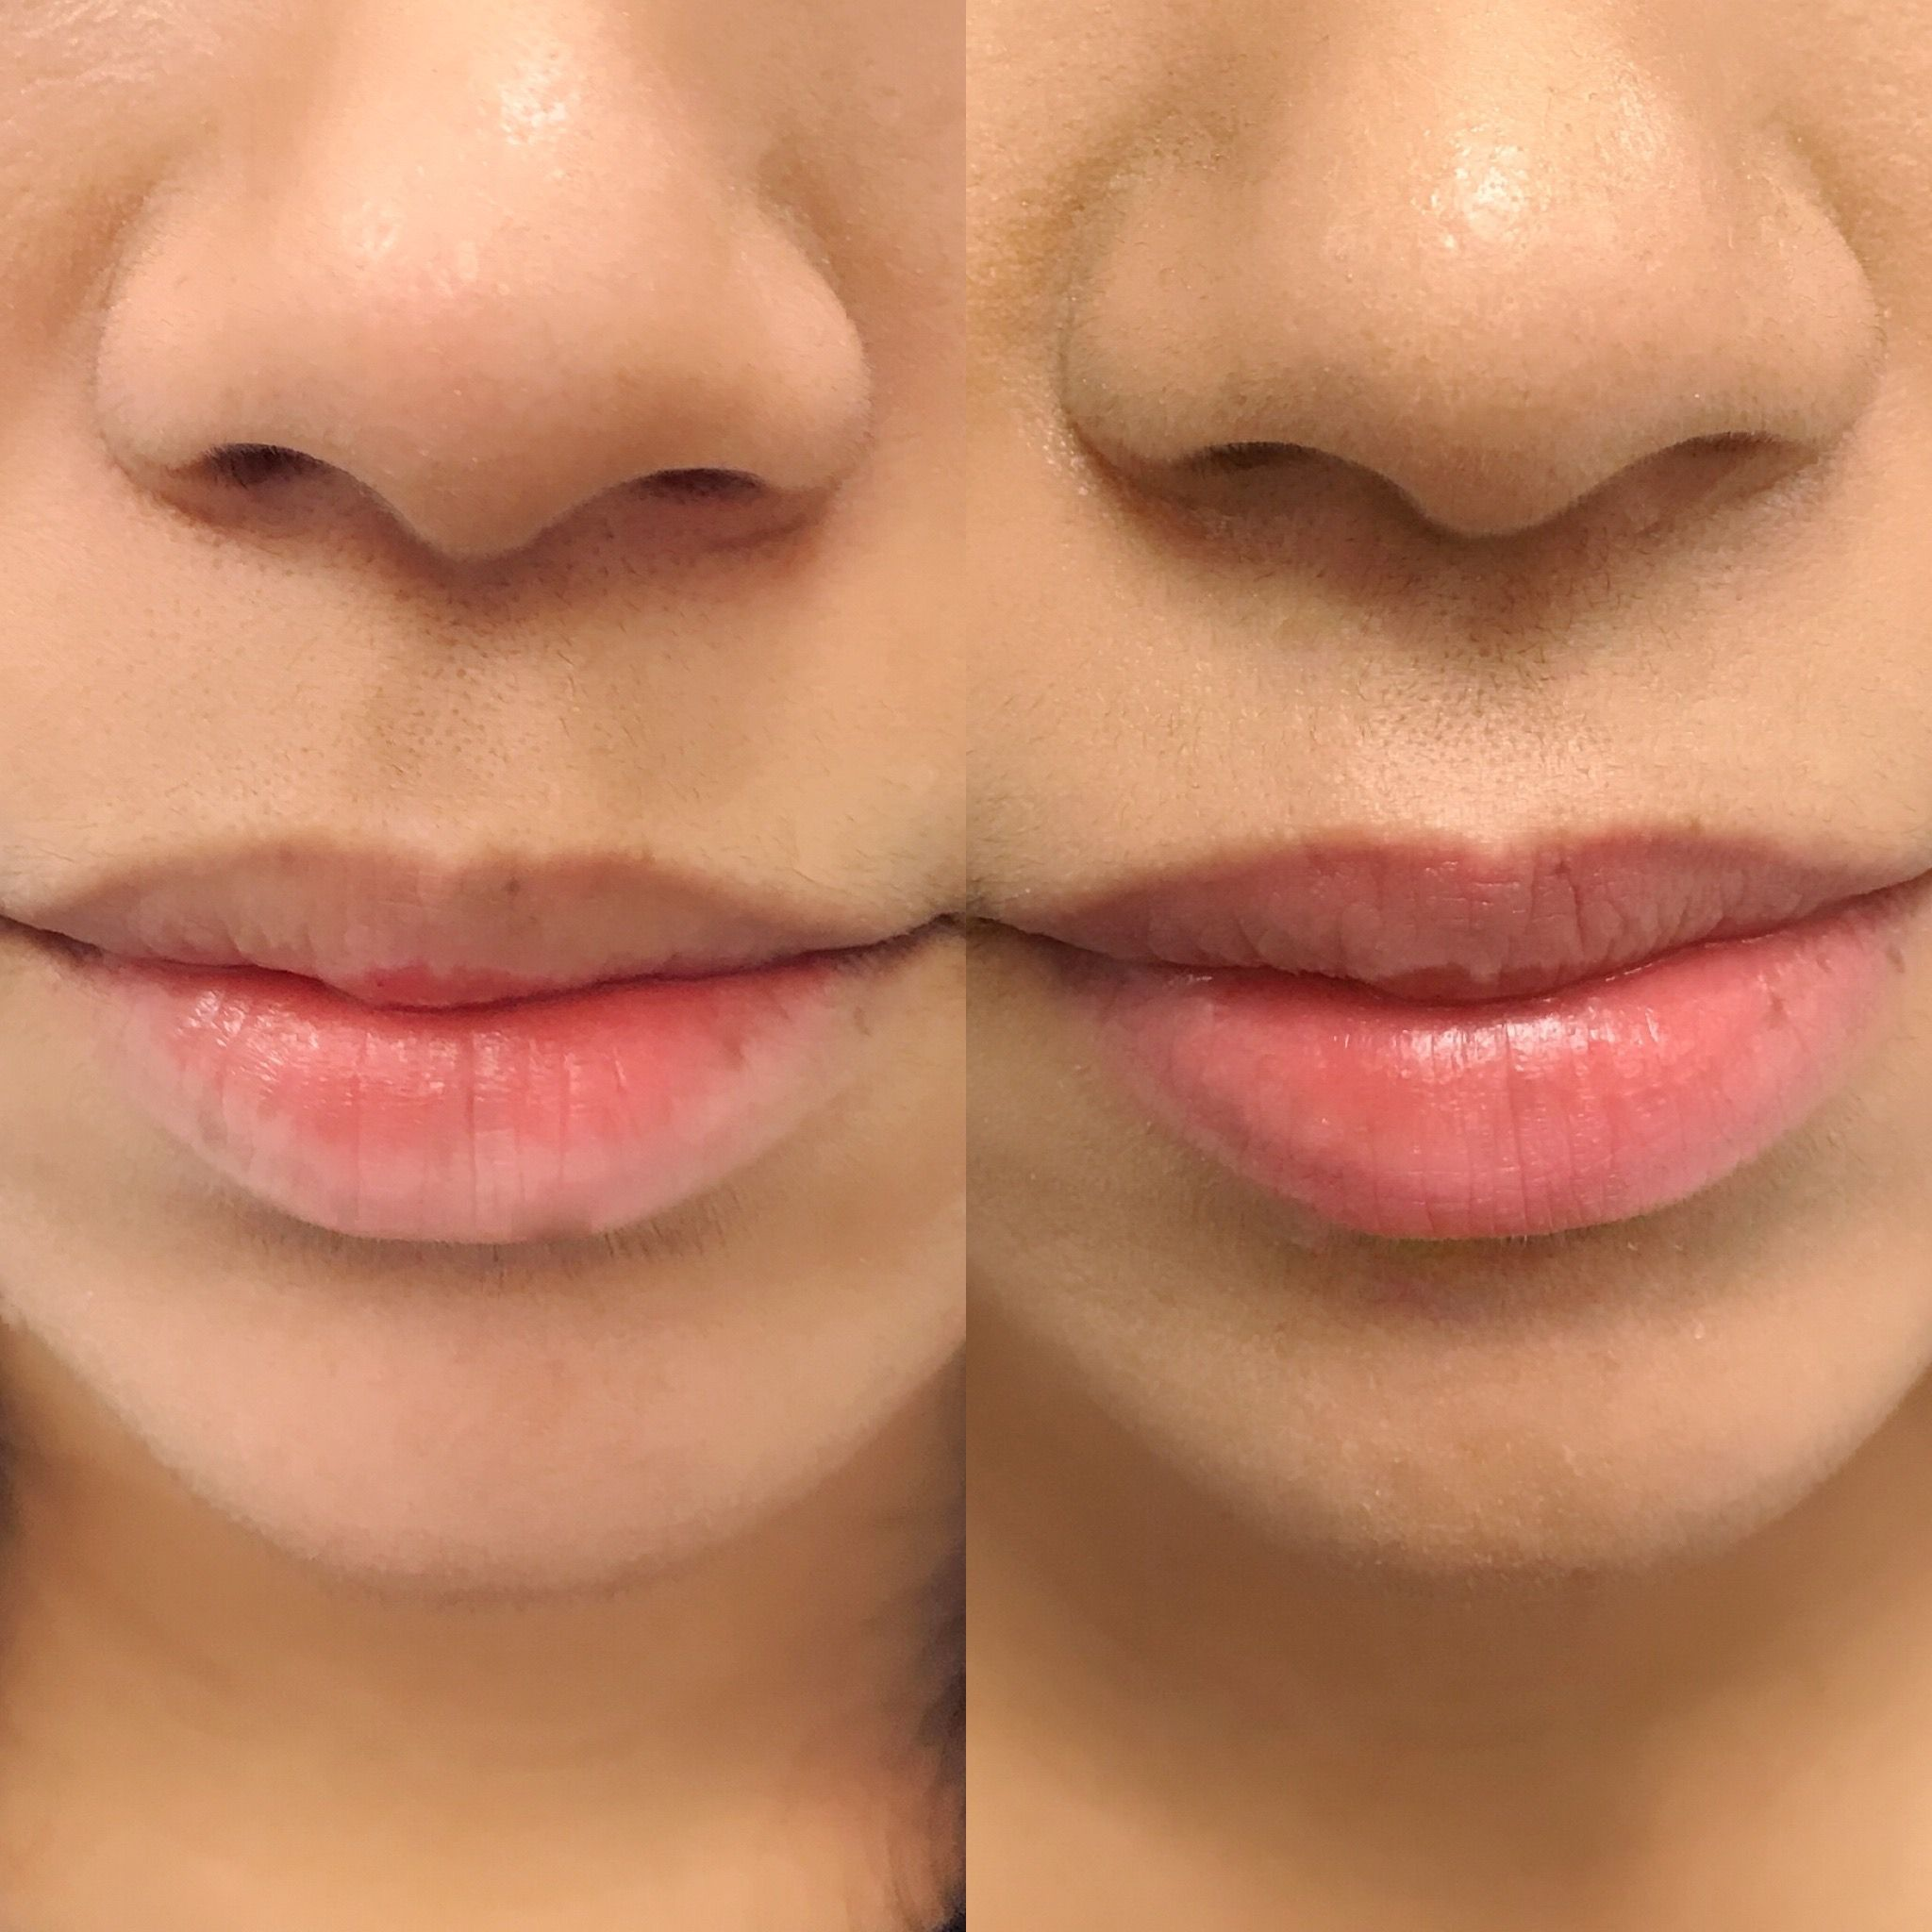 Before and after healed lip blush